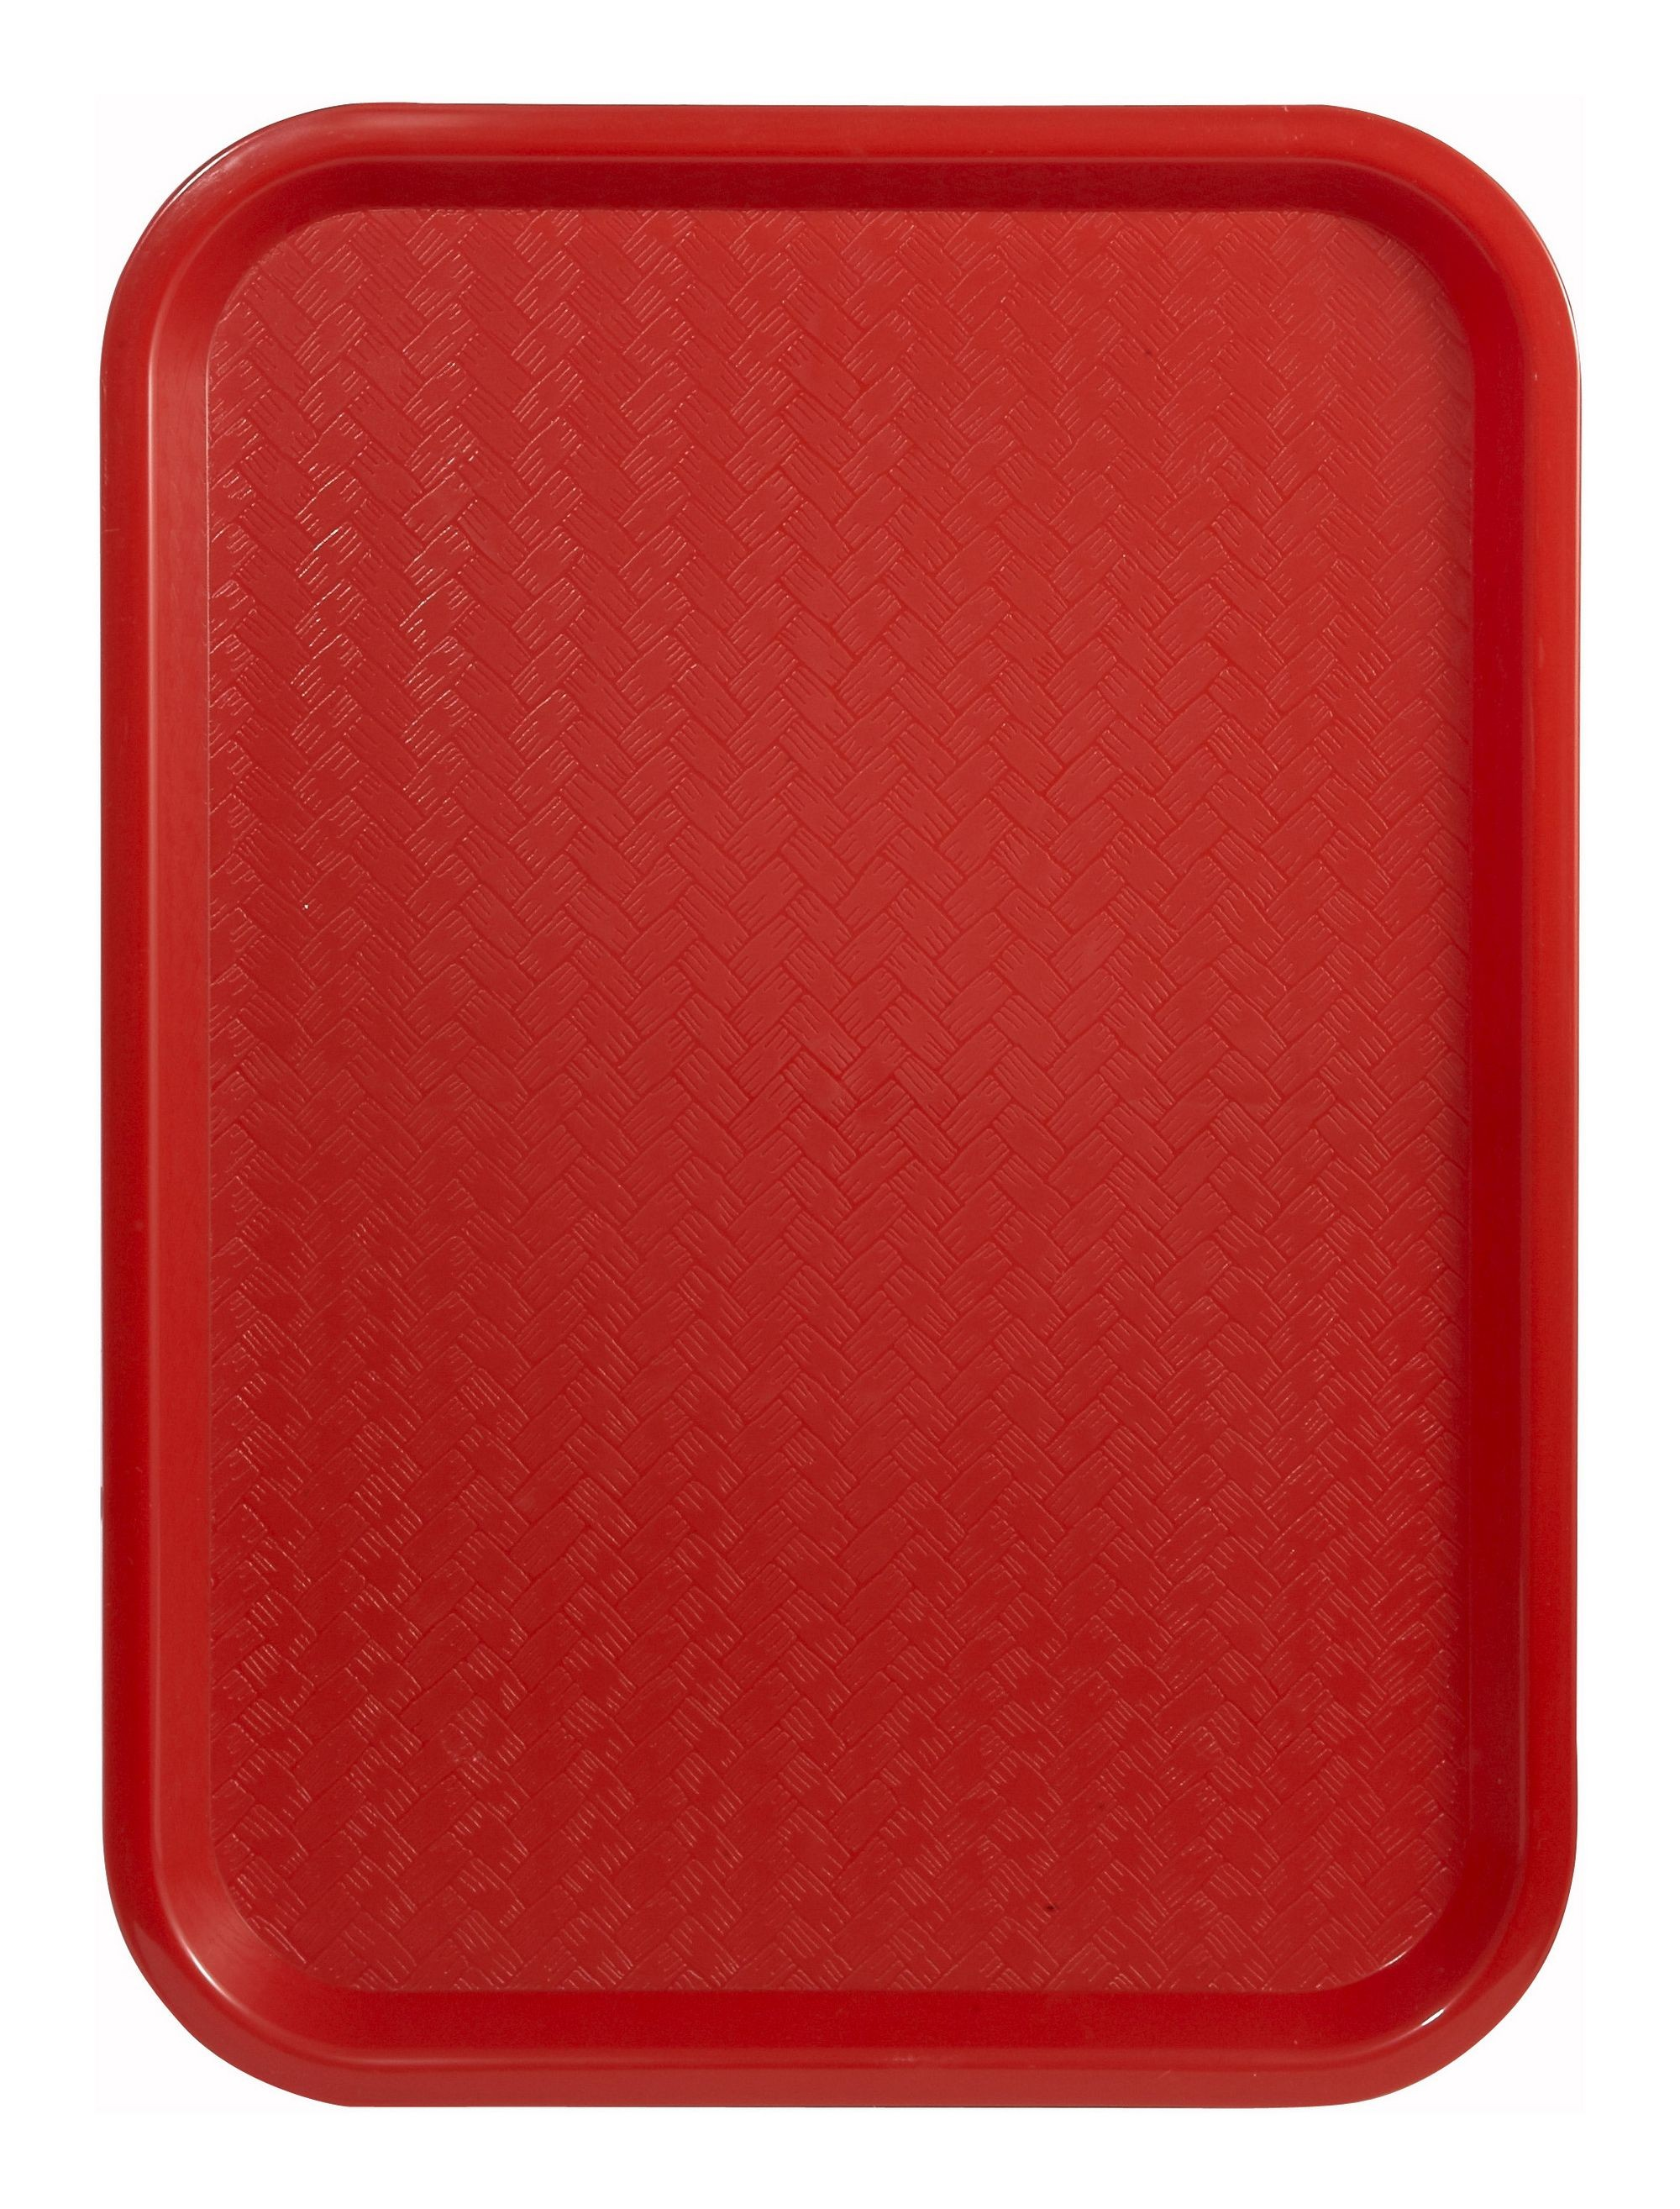 "Winco FFT-1216R Red Plastic Fast Food Tray 12"" x 16"""